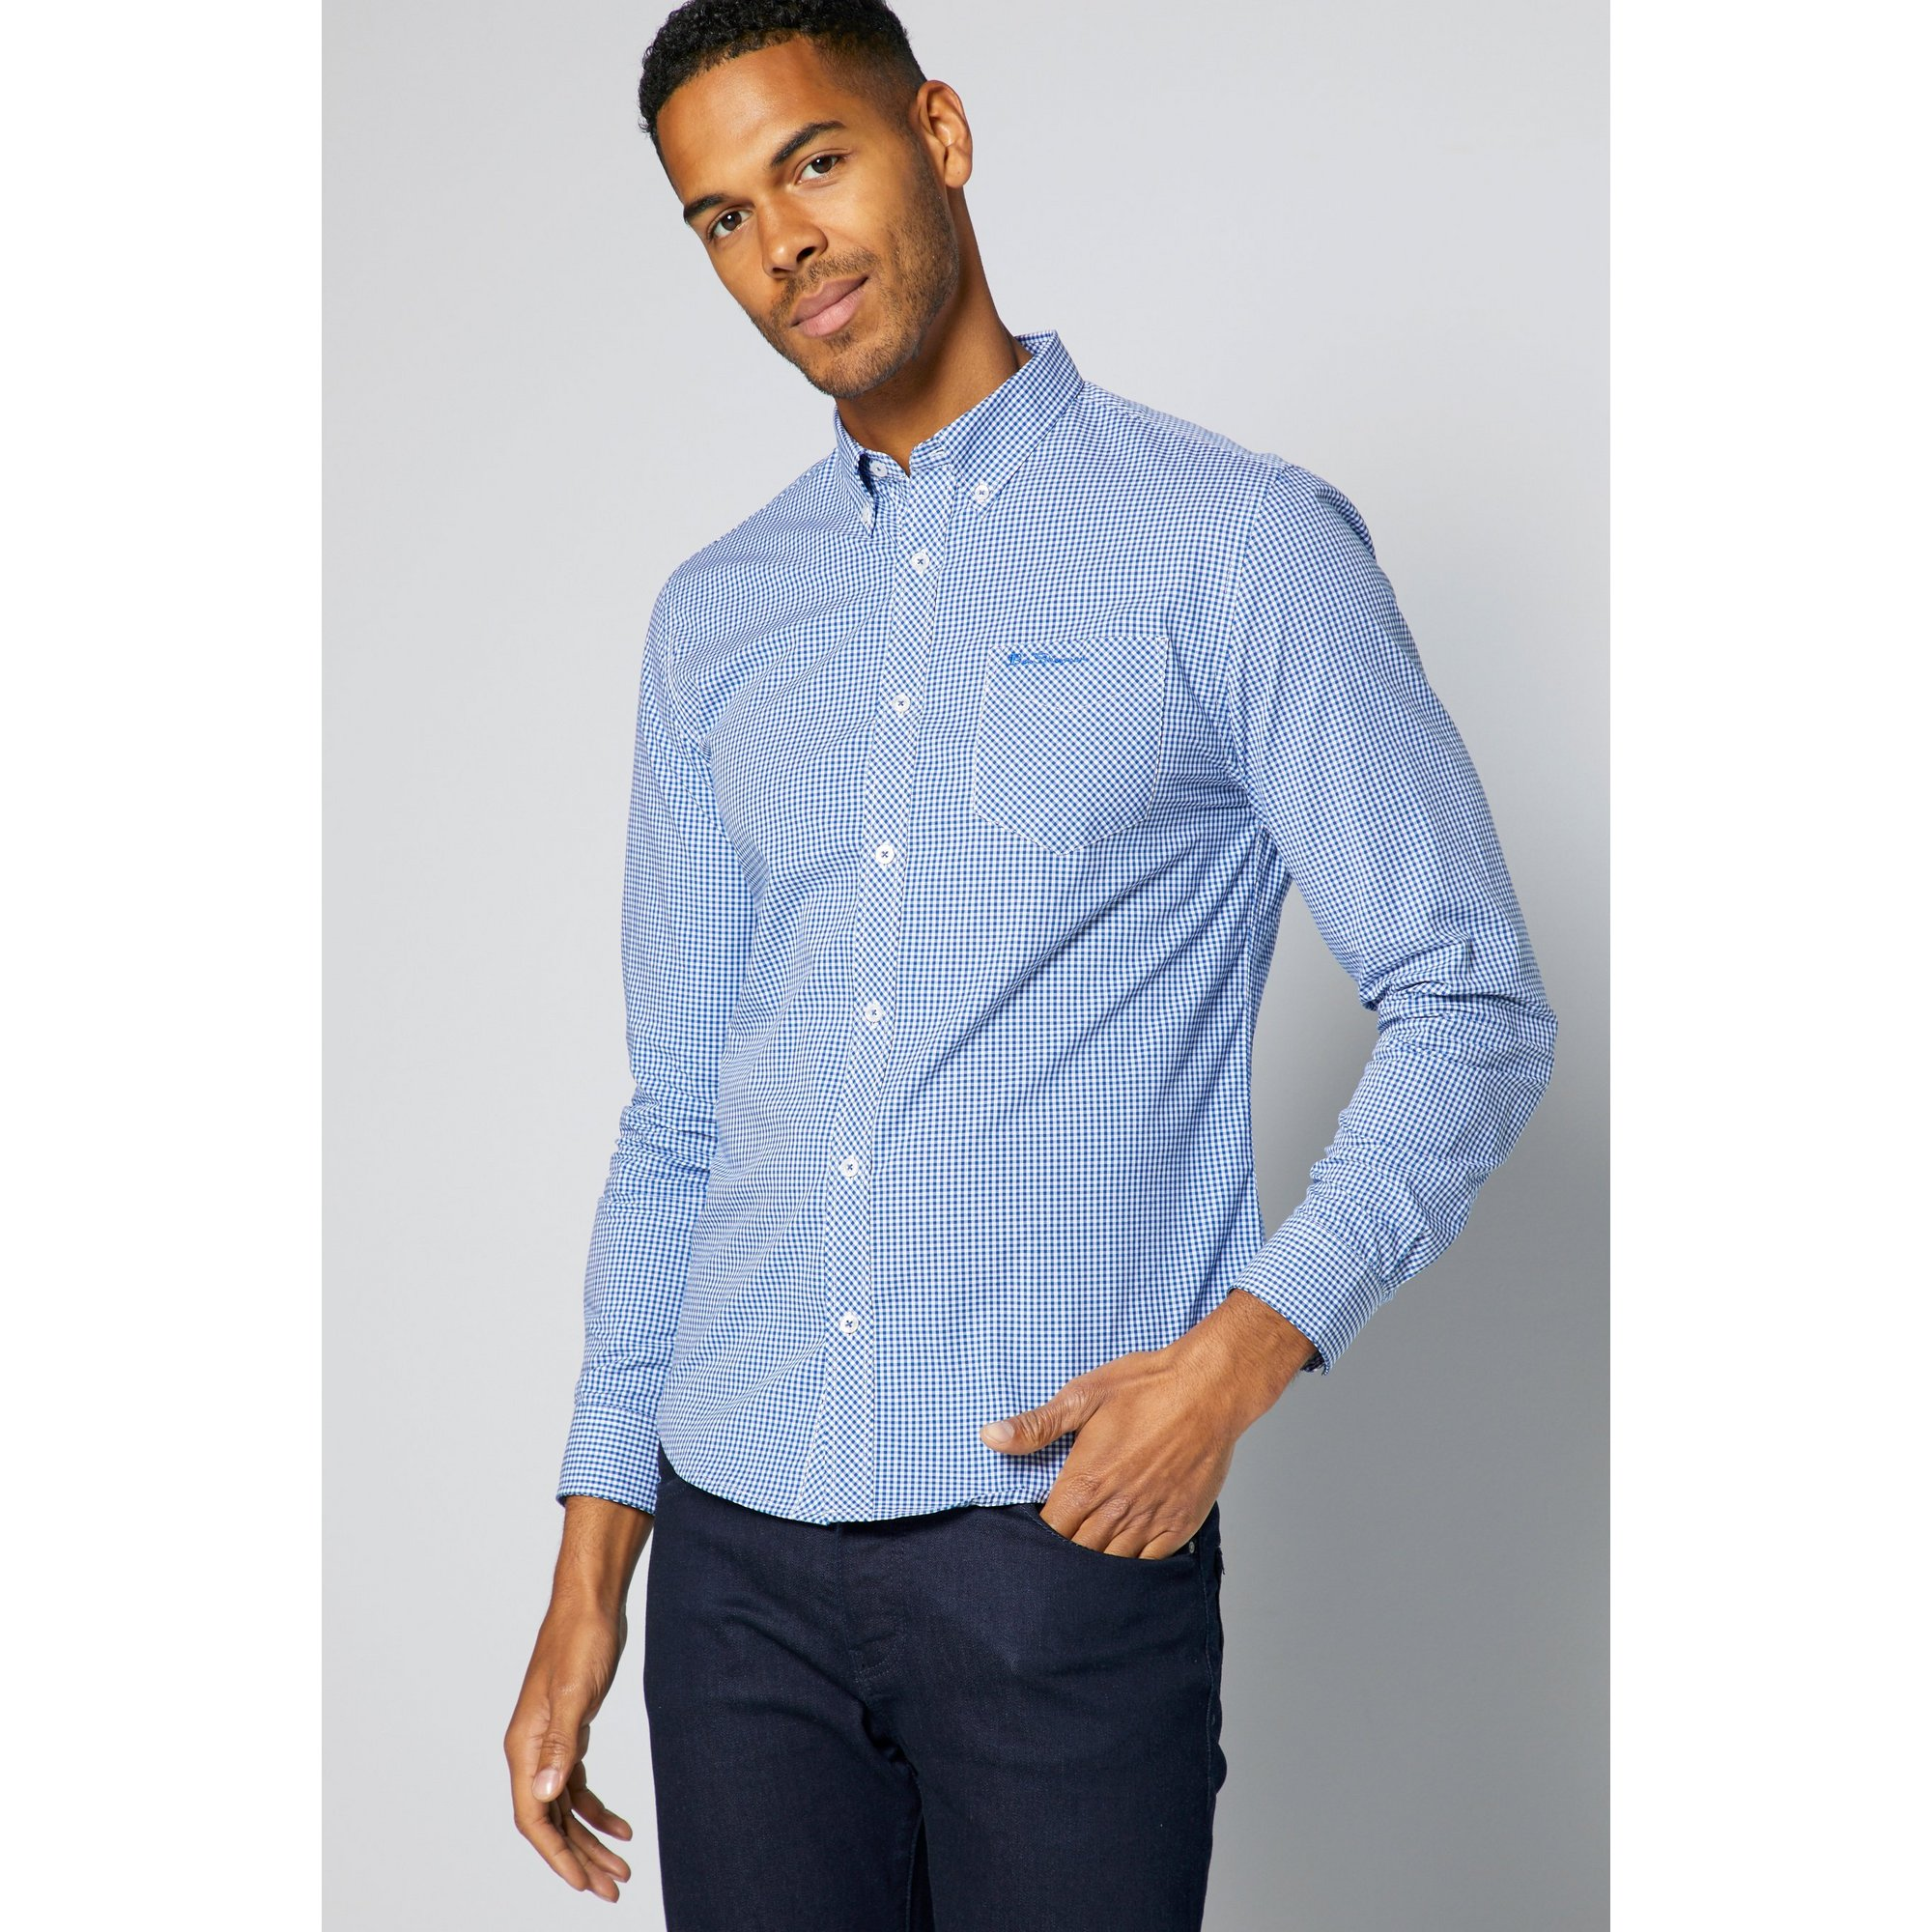 Image of Ben Sherman Classic Gingham Check Shirt